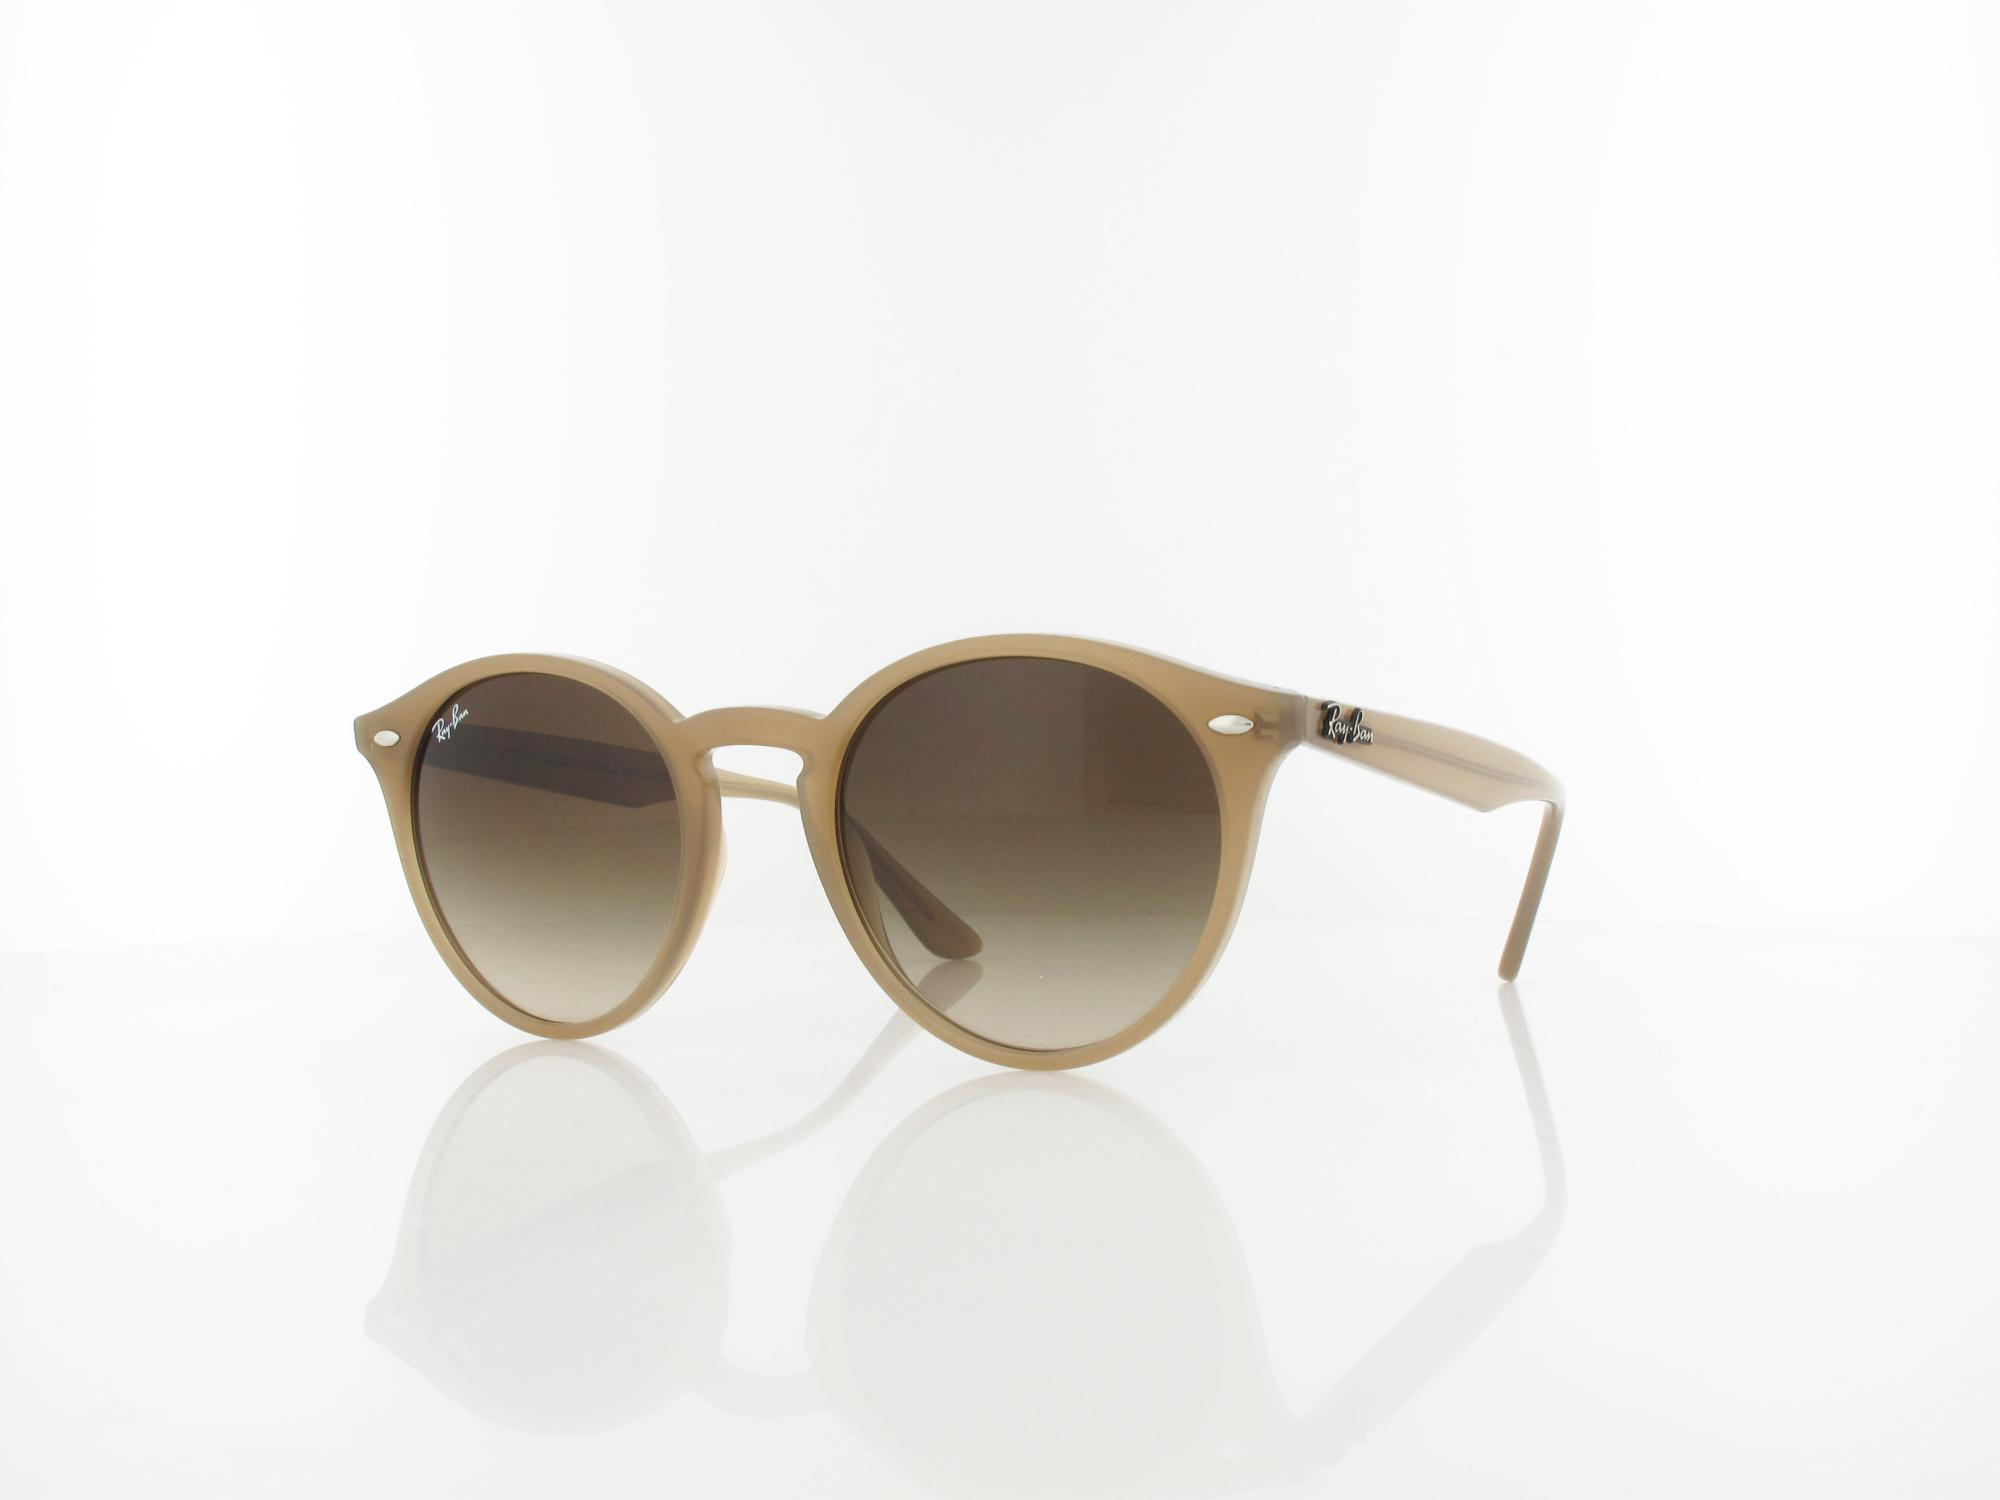 Ray Ban | RB2180 616613 51 | turtledove / brown gradient